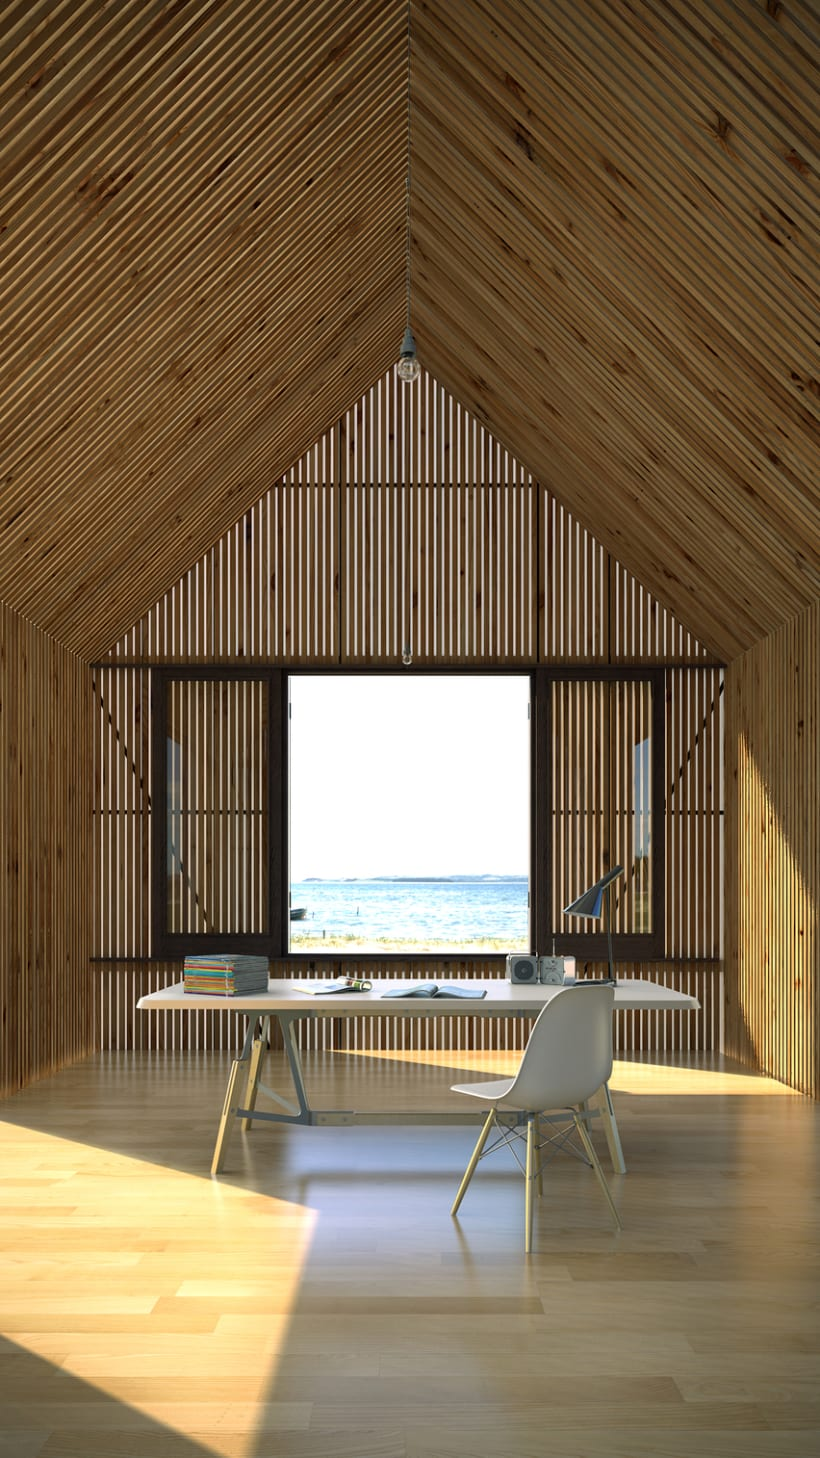 2013 Seaview House, Jackson Clement Burrows Architects. 2